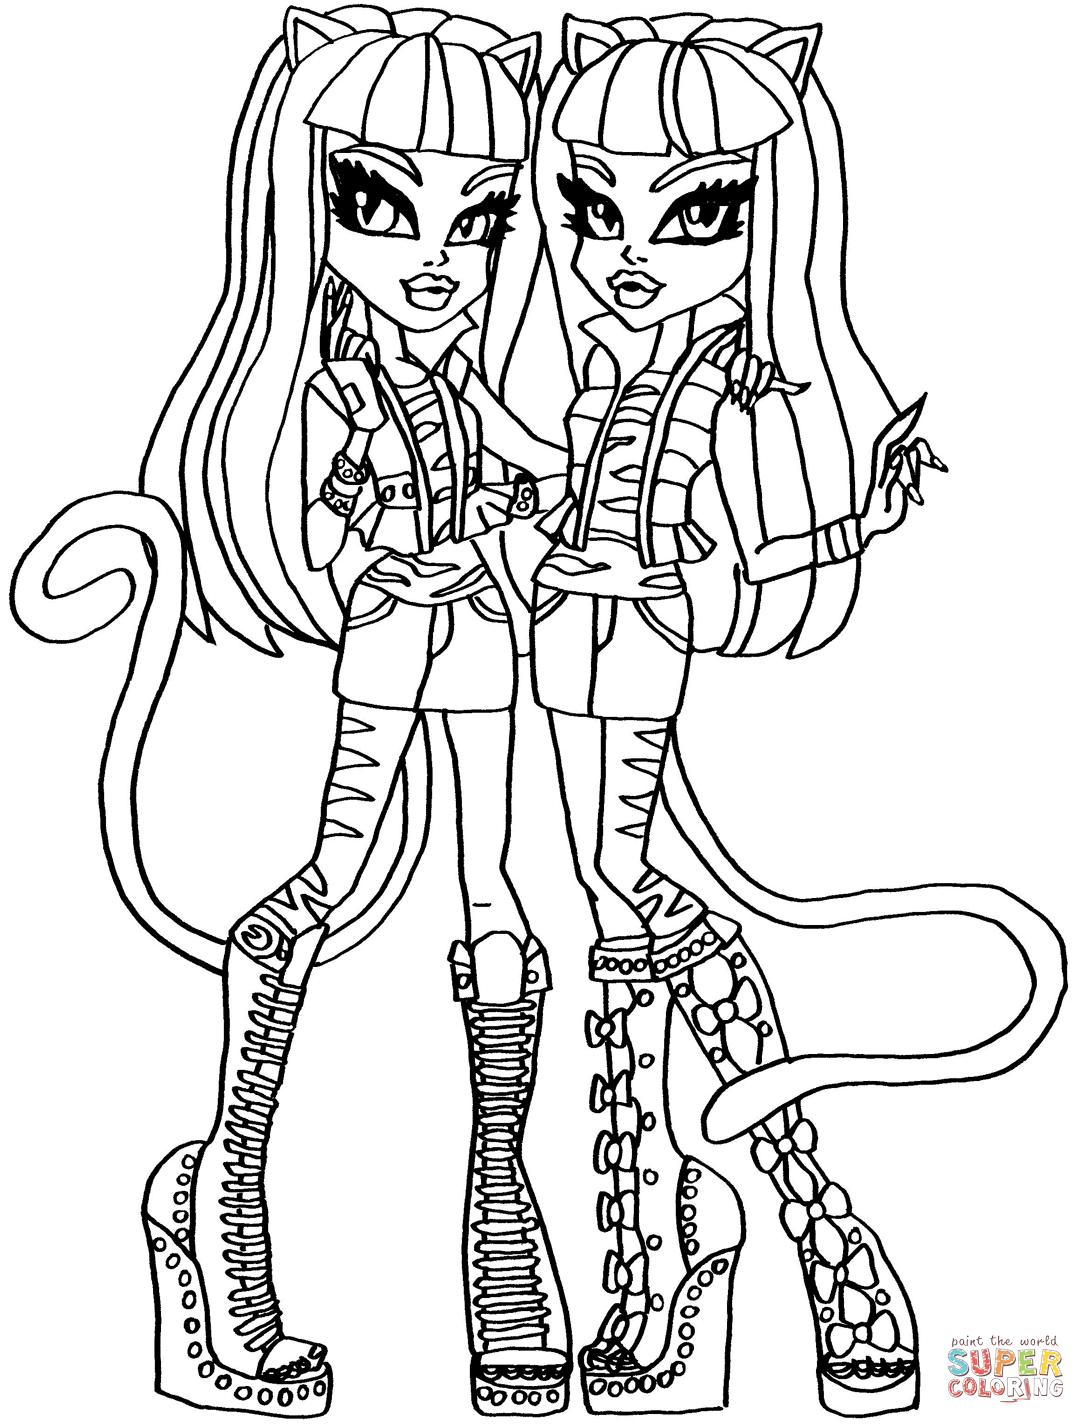 Monster High Coloring Pages that You Can Print - Exquisite Monster High Printables Coloring Pages Free Gallery